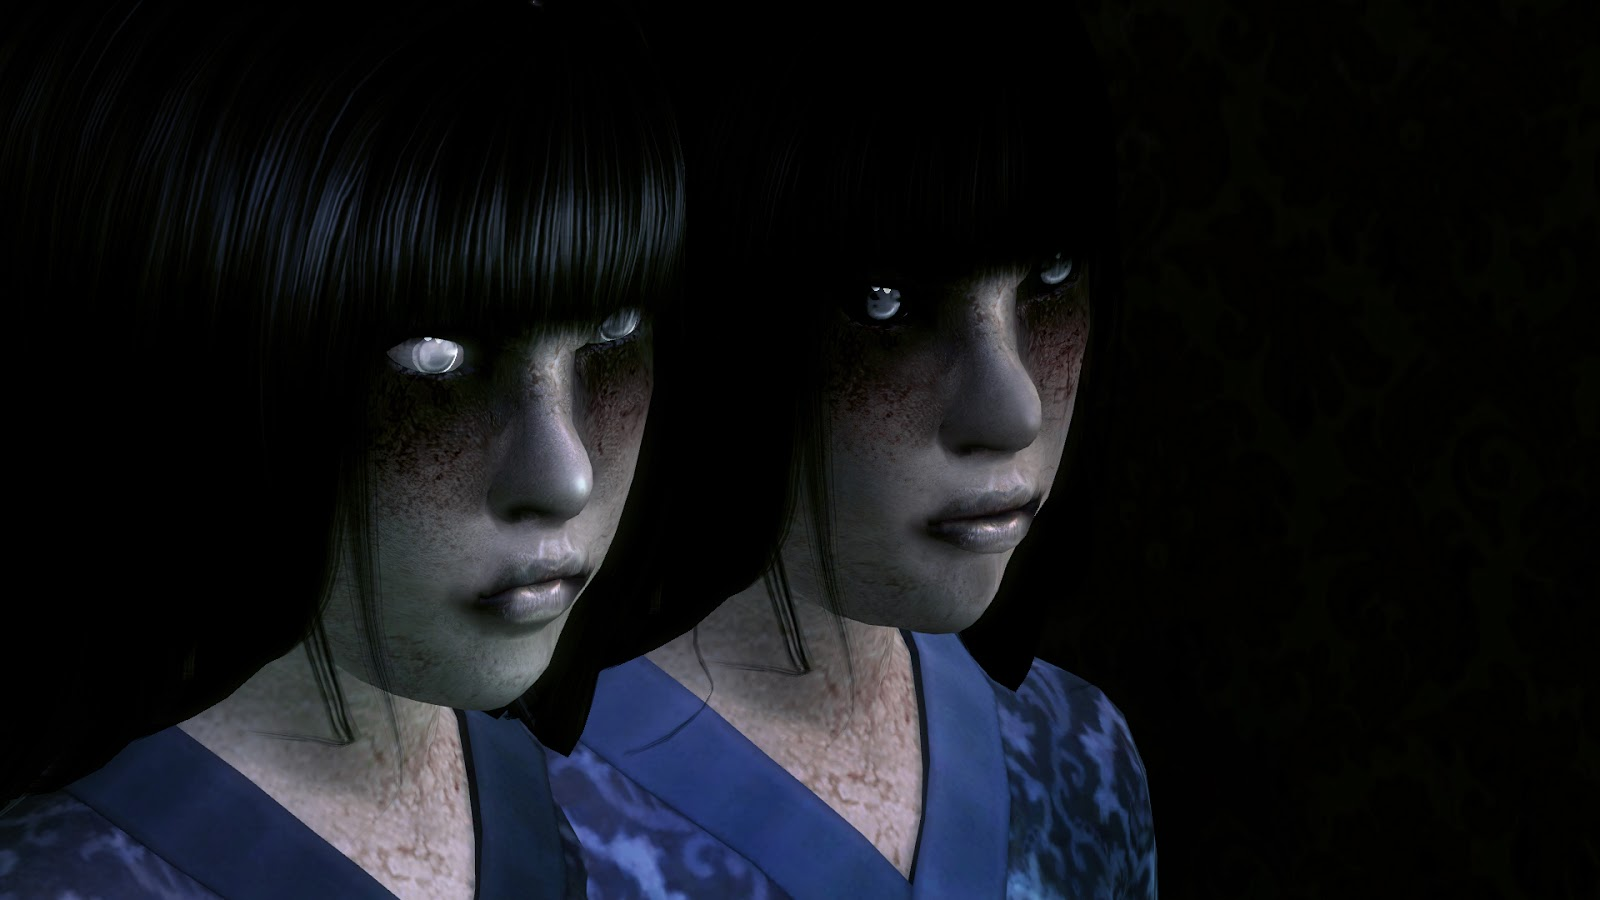 My Sims 3 Blog: Sims 3: Project Zero (Fatal Frame) 2 - Ghost Dolls ...